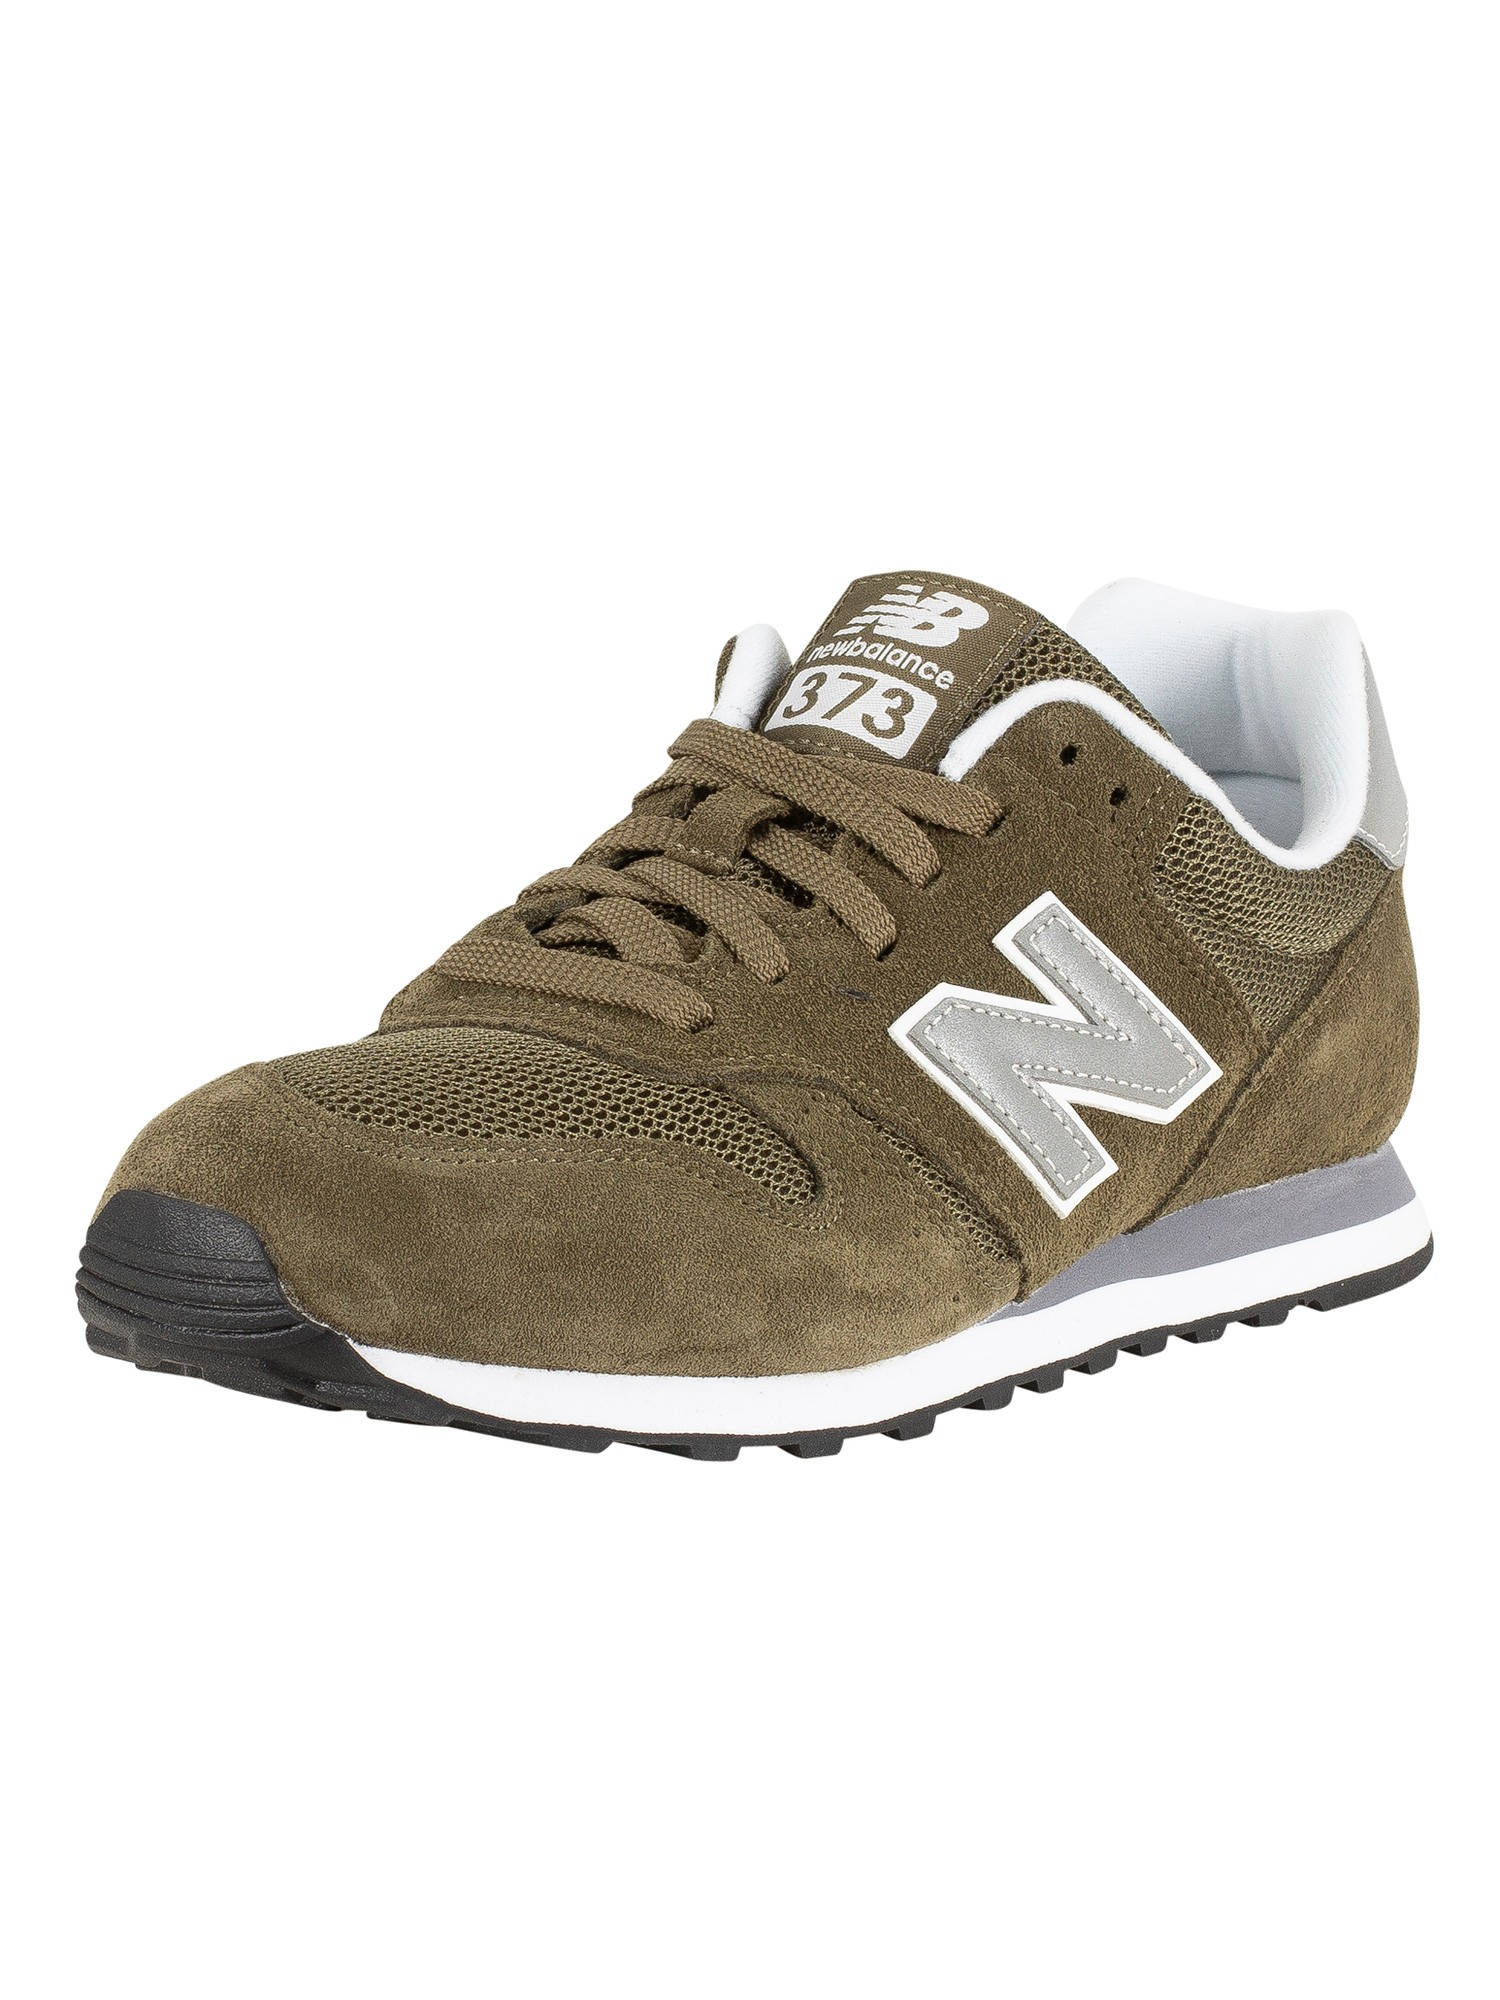 new balance dark green 373 trainers stand out. Black Bedroom Furniture Sets. Home Design Ideas